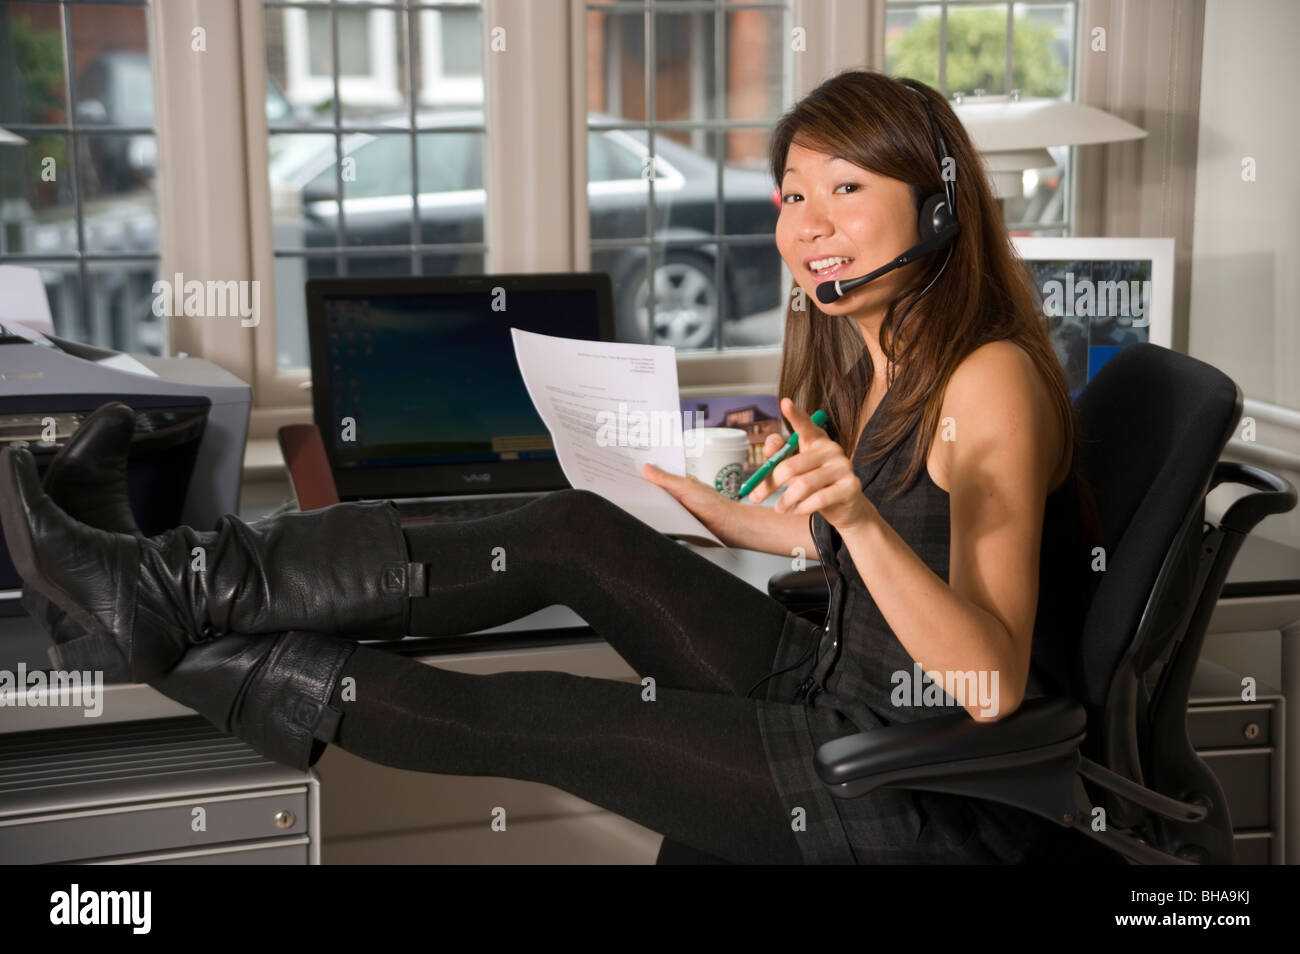 japanese office chair oversized reading young asian woman in feet on desk with phone